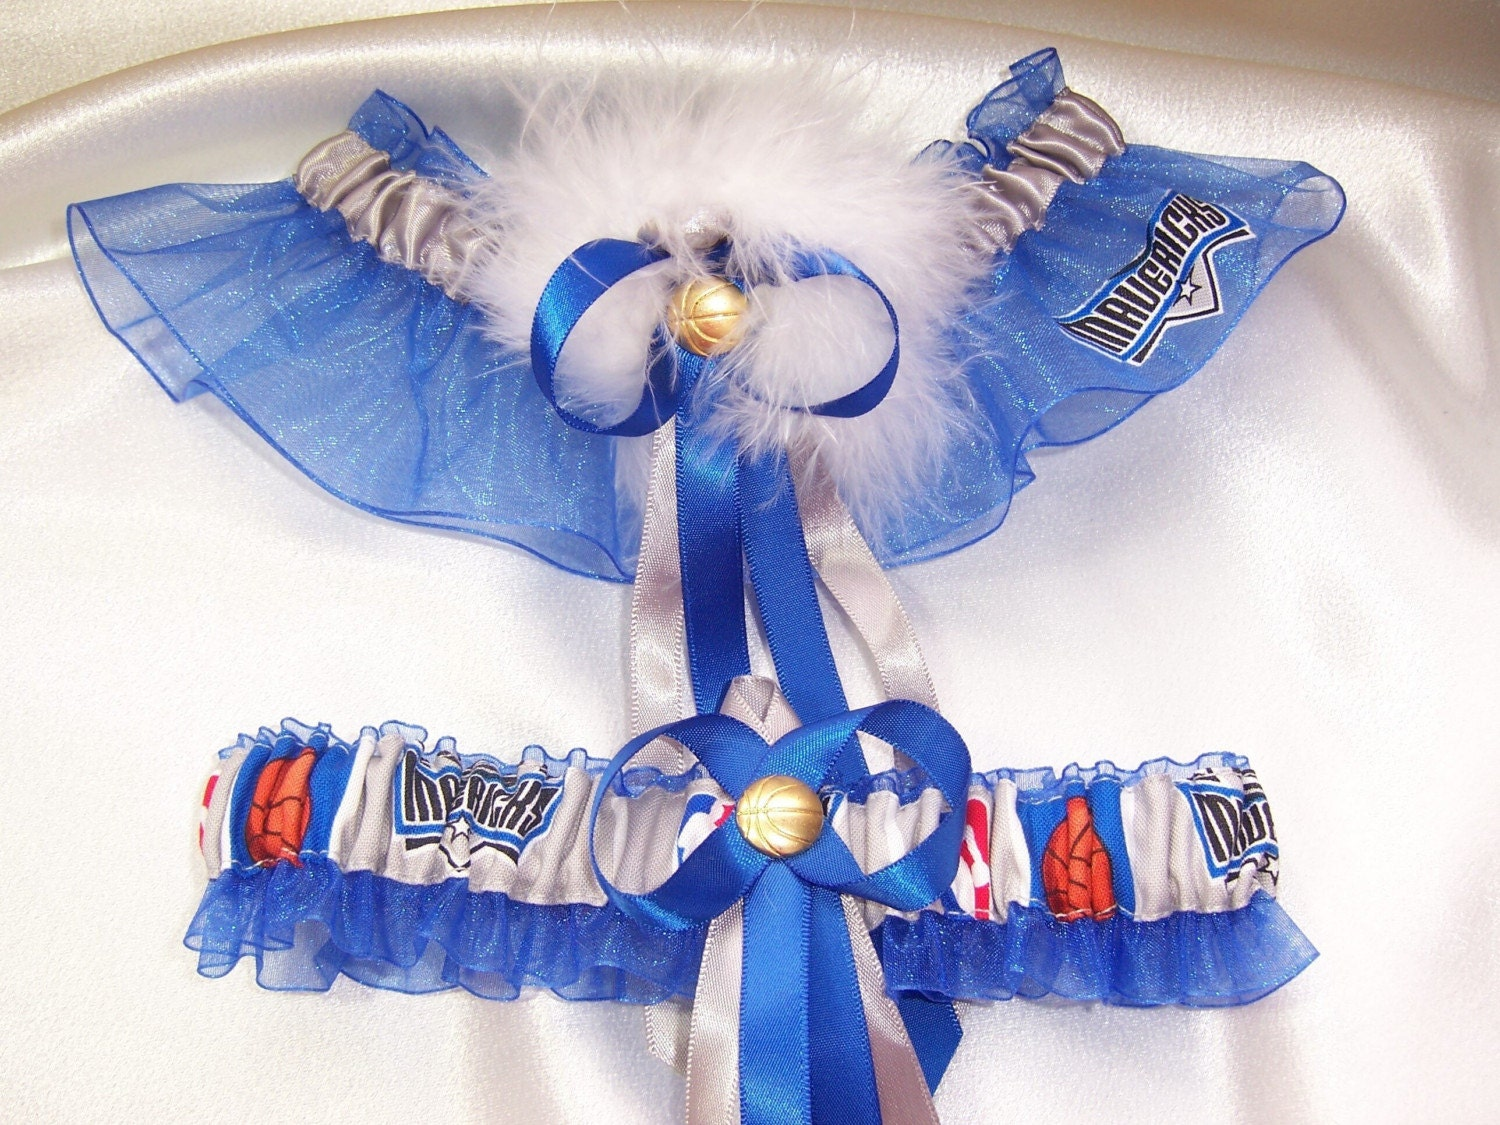 ... blue and silver ribbons, a sexy marabou pouf, and a basketball charm.